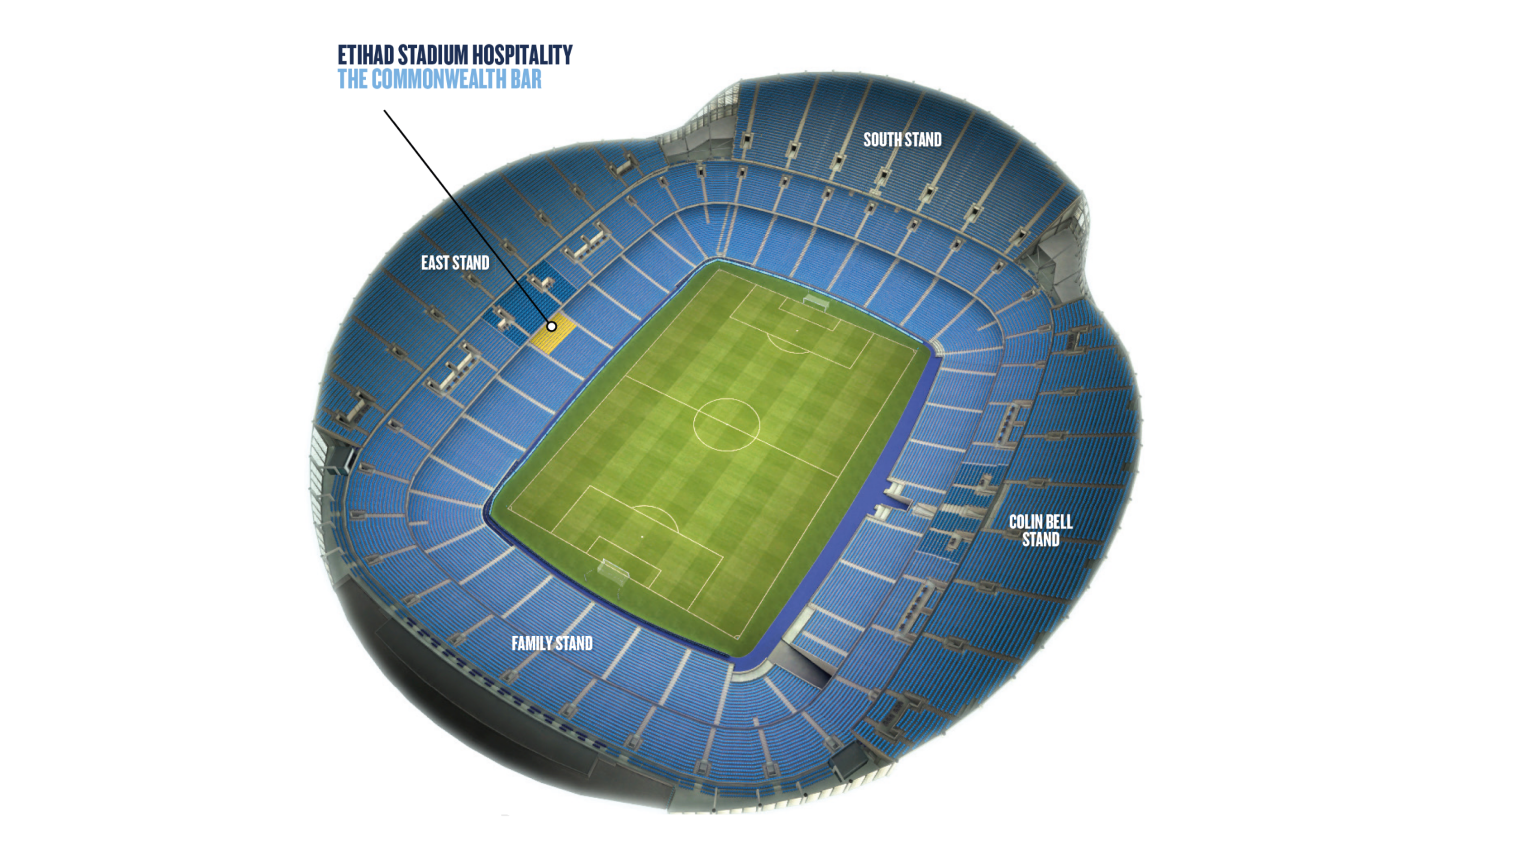 Commonwealth seating location within the stadium